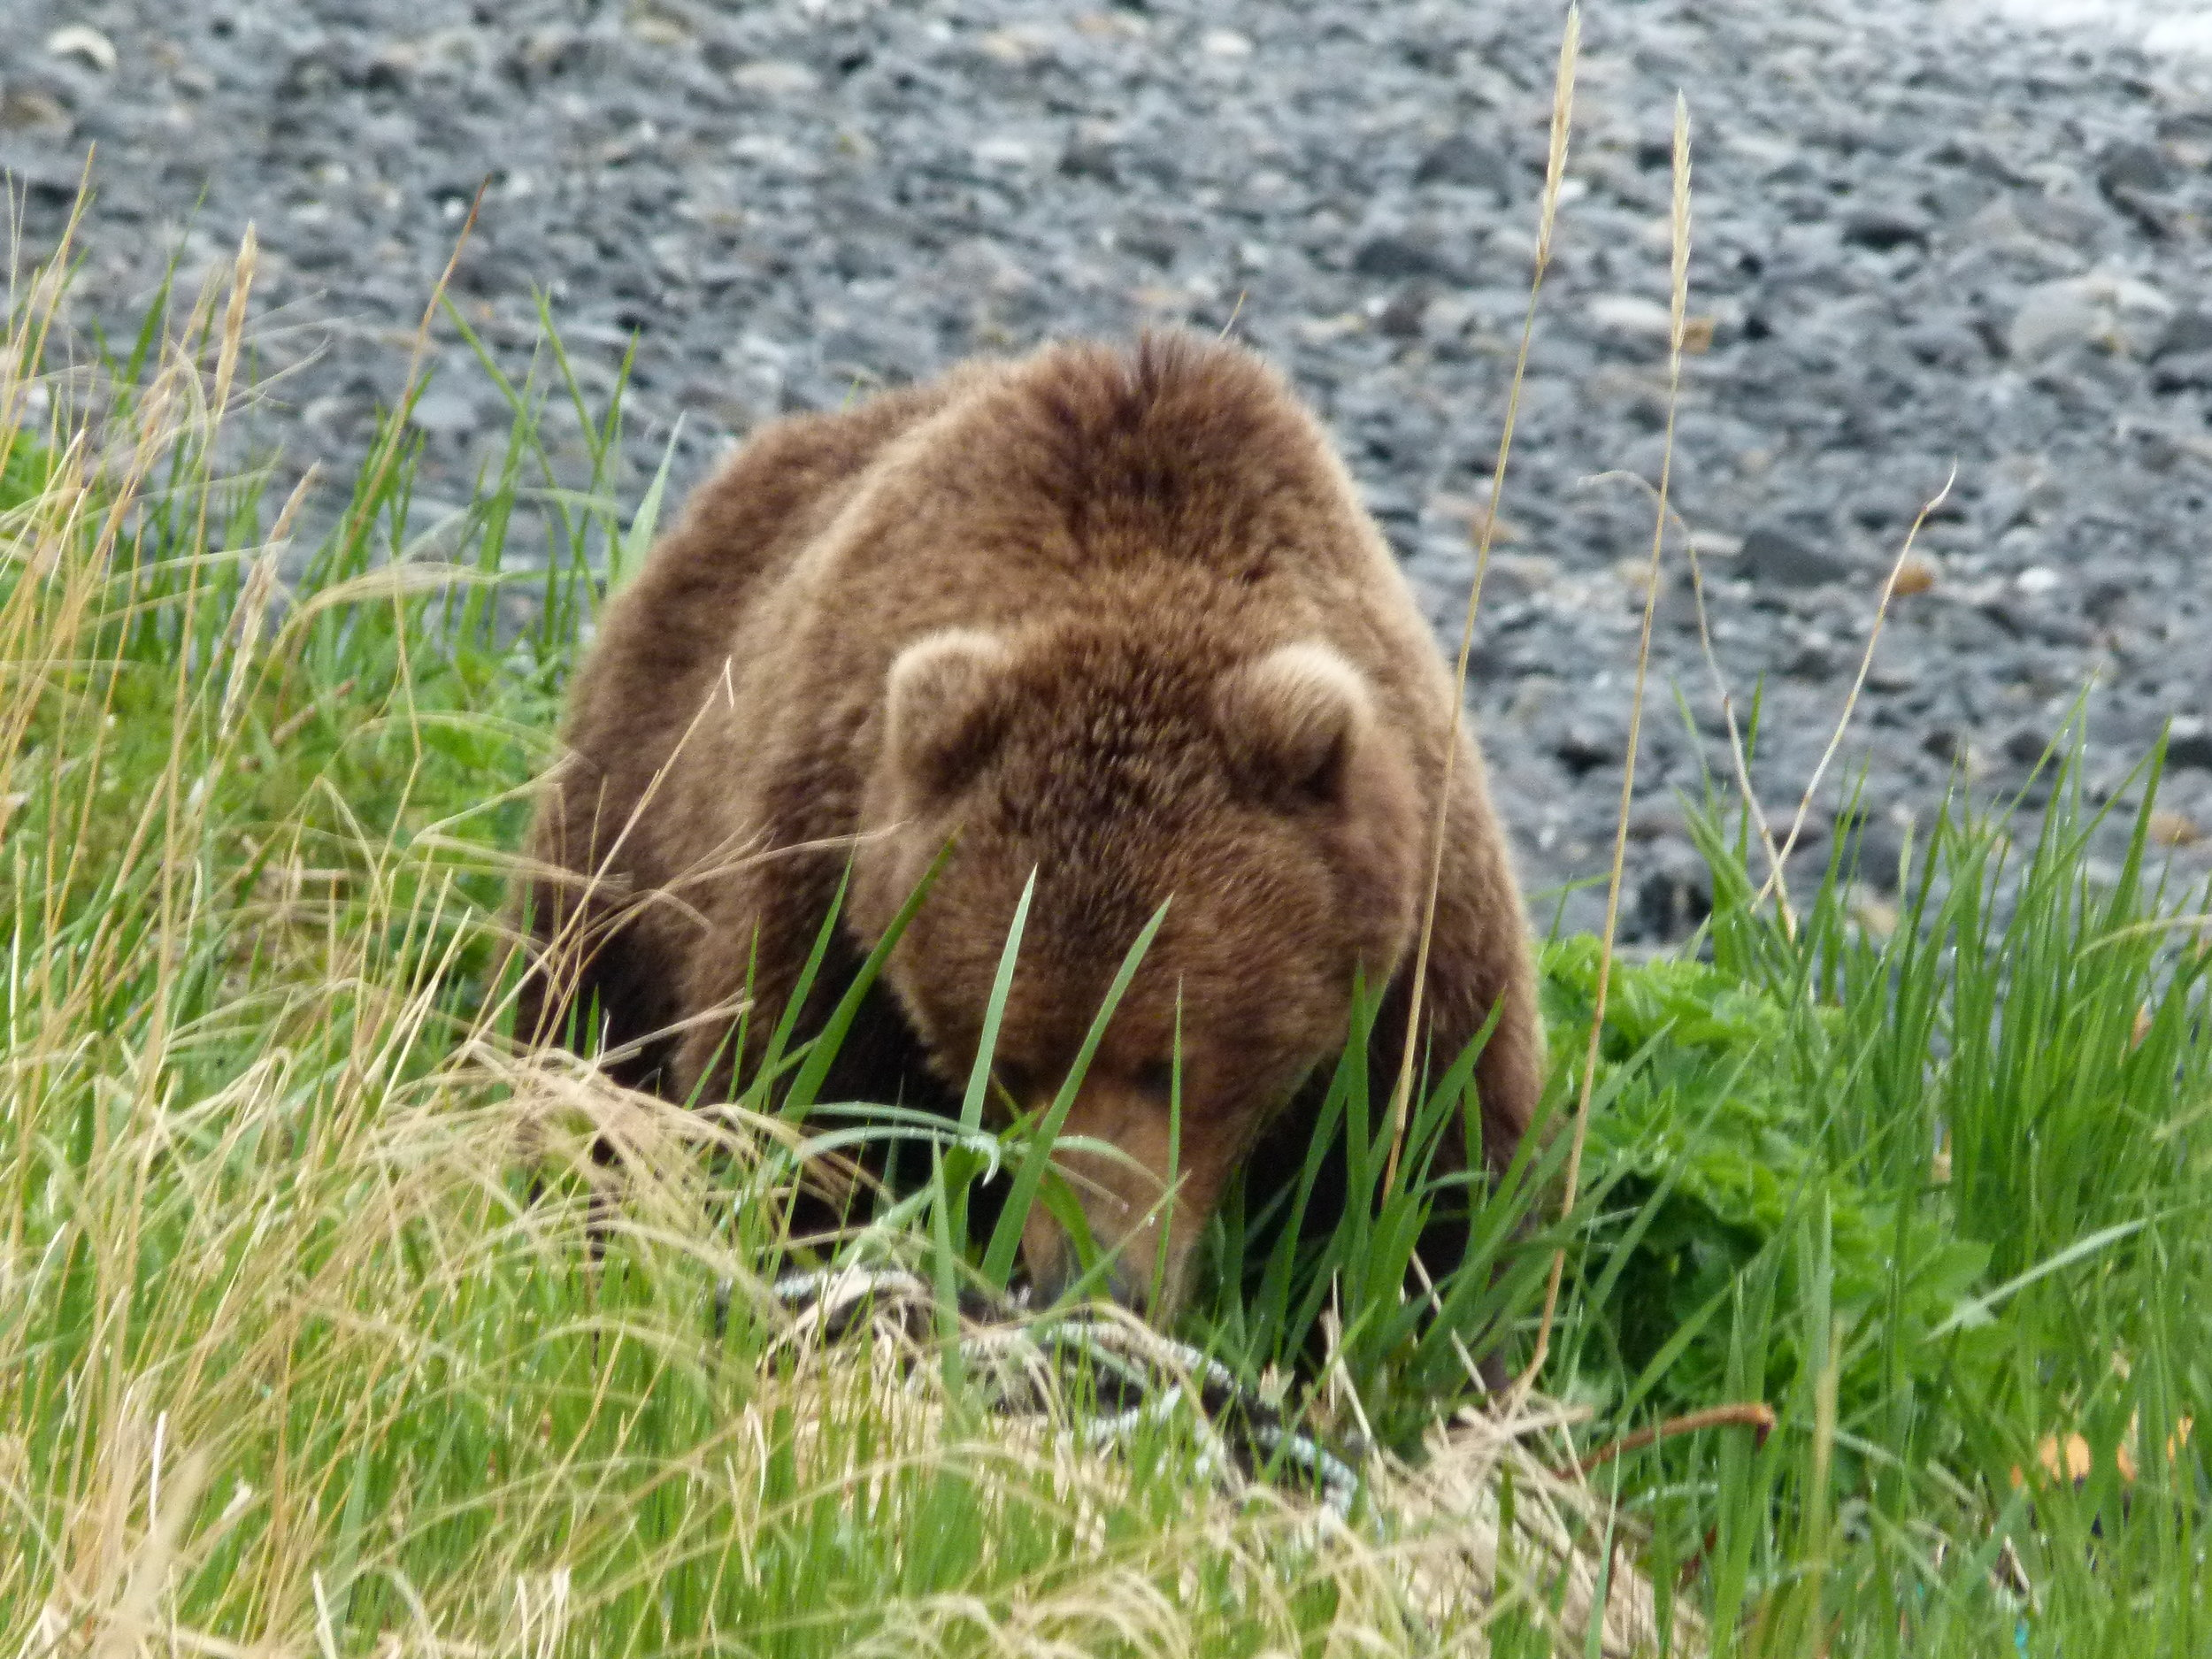 This bear was interested in a helping of fresh green vegetation at Trap-6, just like us. There are about 3,500 Kodiak bears on the island, and 14,00 people. They are the largest brown bears in the world because they've been isolated from other brown bears for 12,000 years, they have a rich diet of salmon, and most of the island is National Wildlife Refuge,free of development.